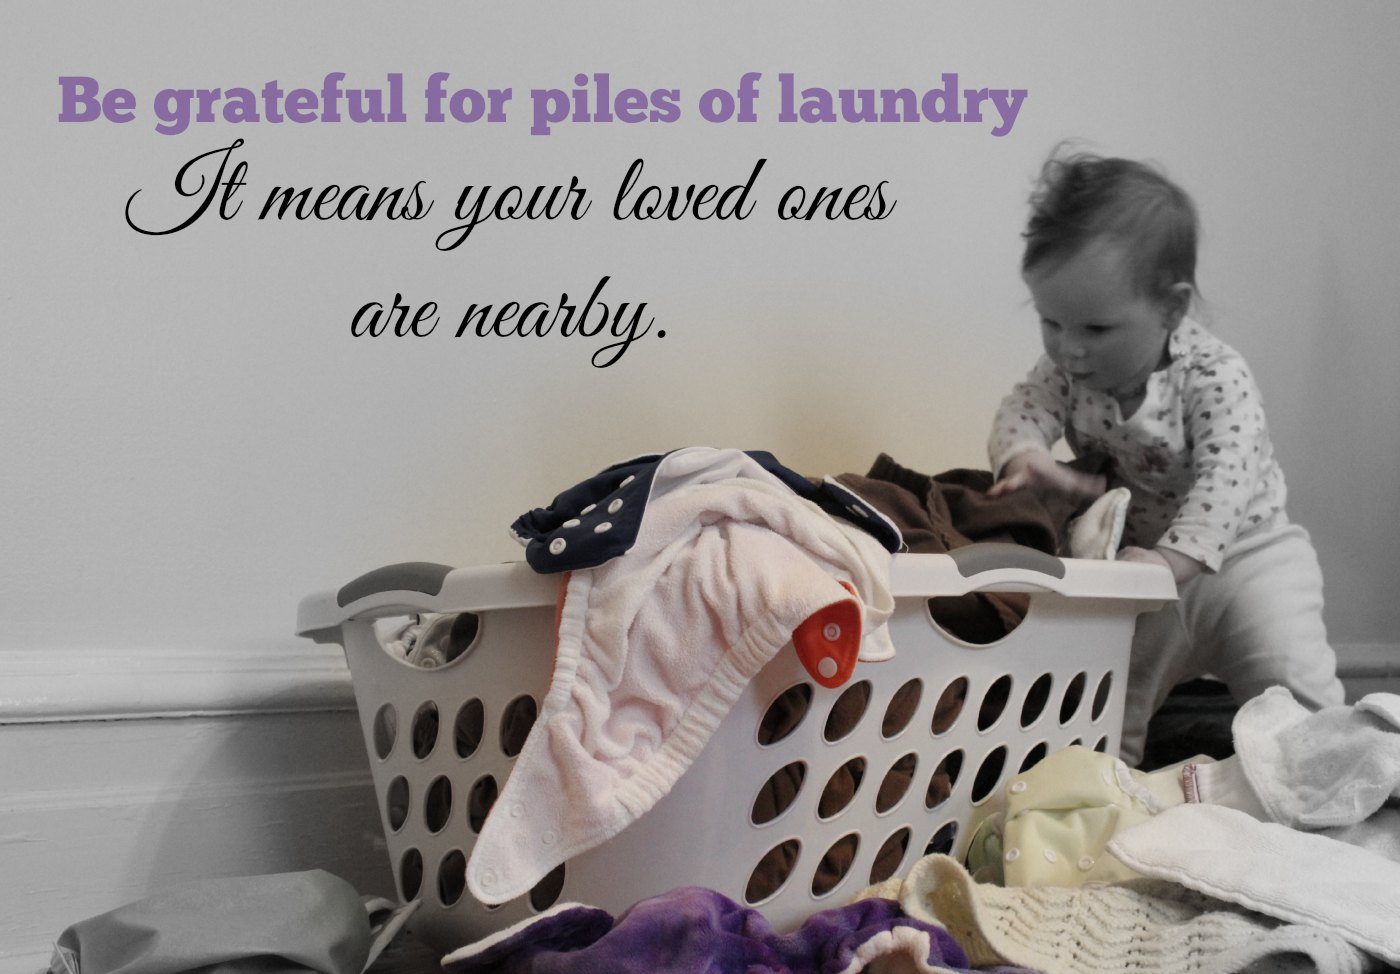 Be grateful for the piles of laundry.  It means your loved ones are nearby.